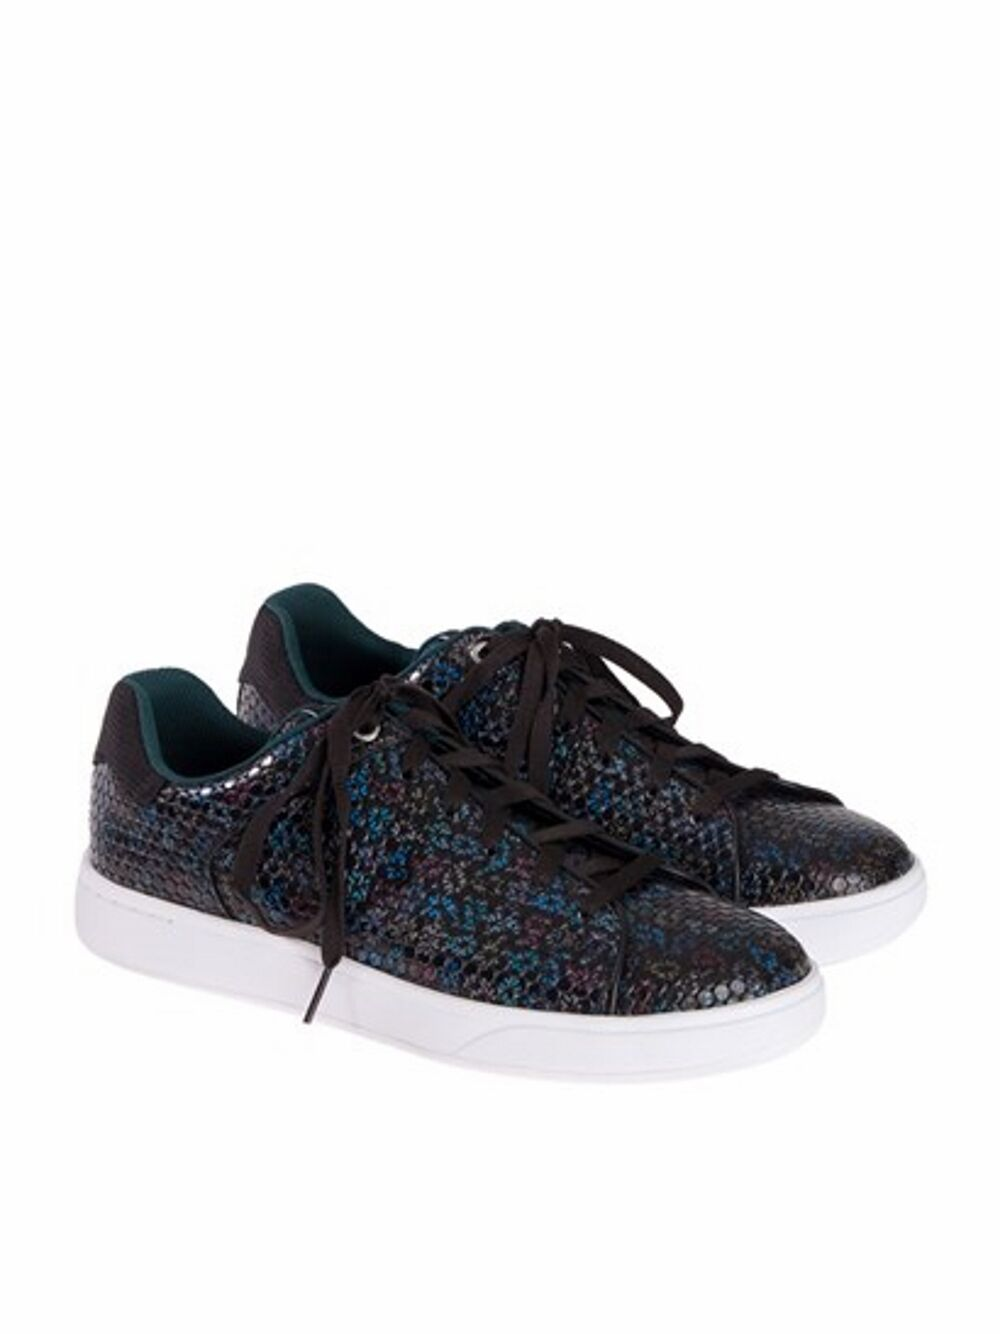 Paul entrenadores, Smith zapatillas print Serge entrenadores, Paul entrenadores f88595